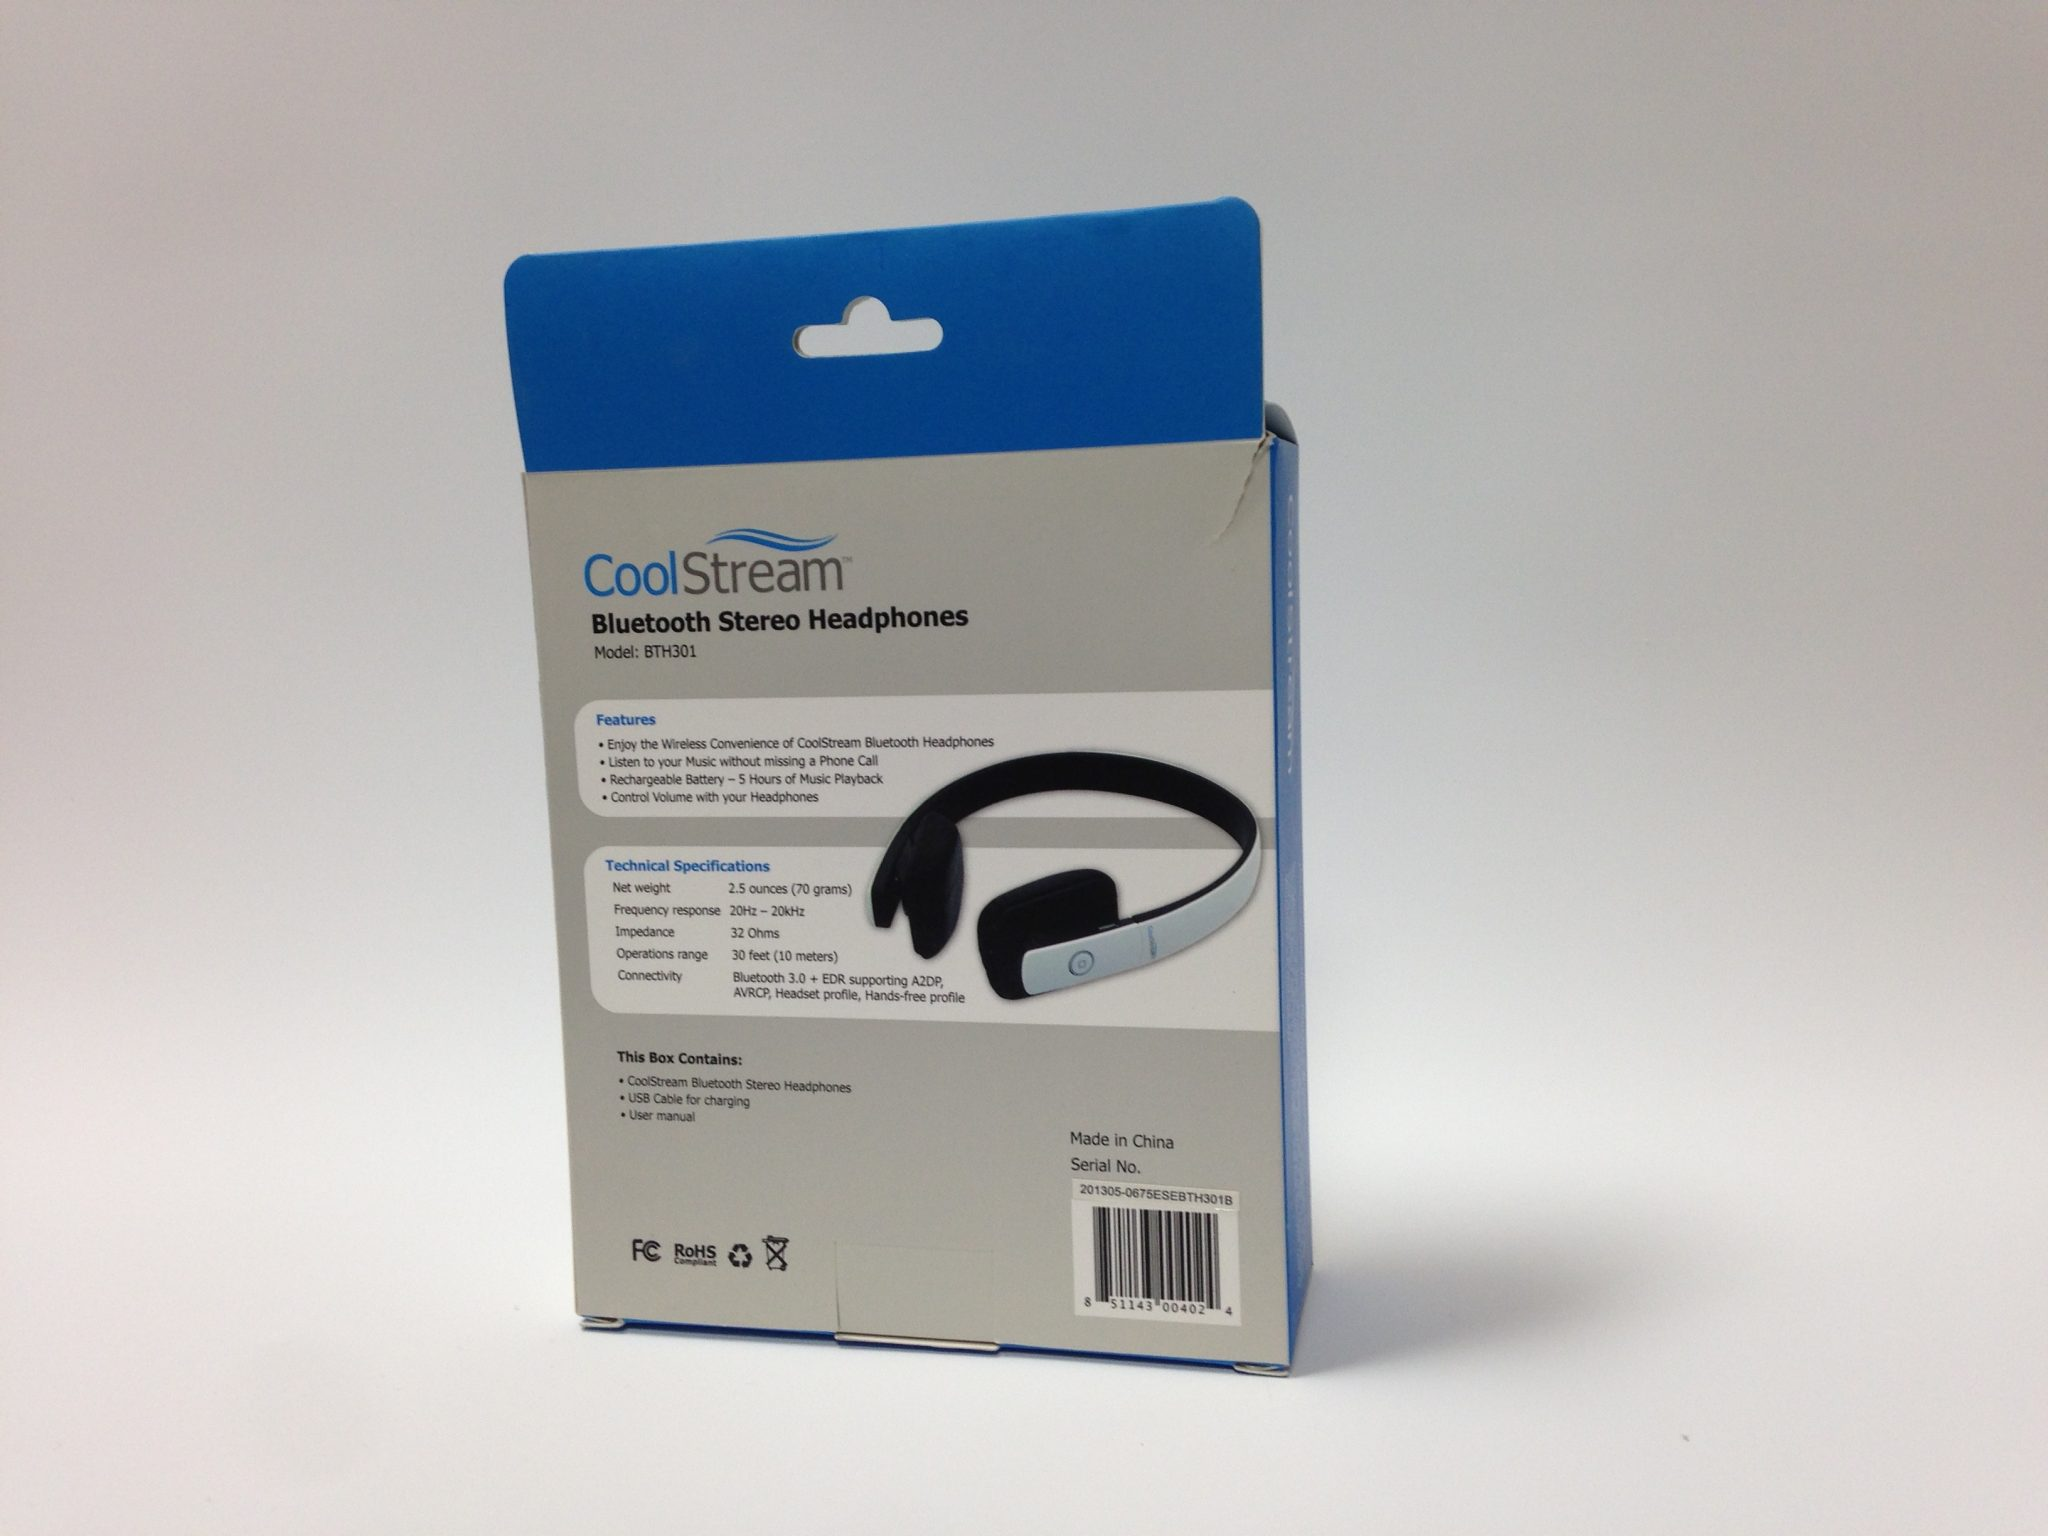 coolstream-headphone-package-back